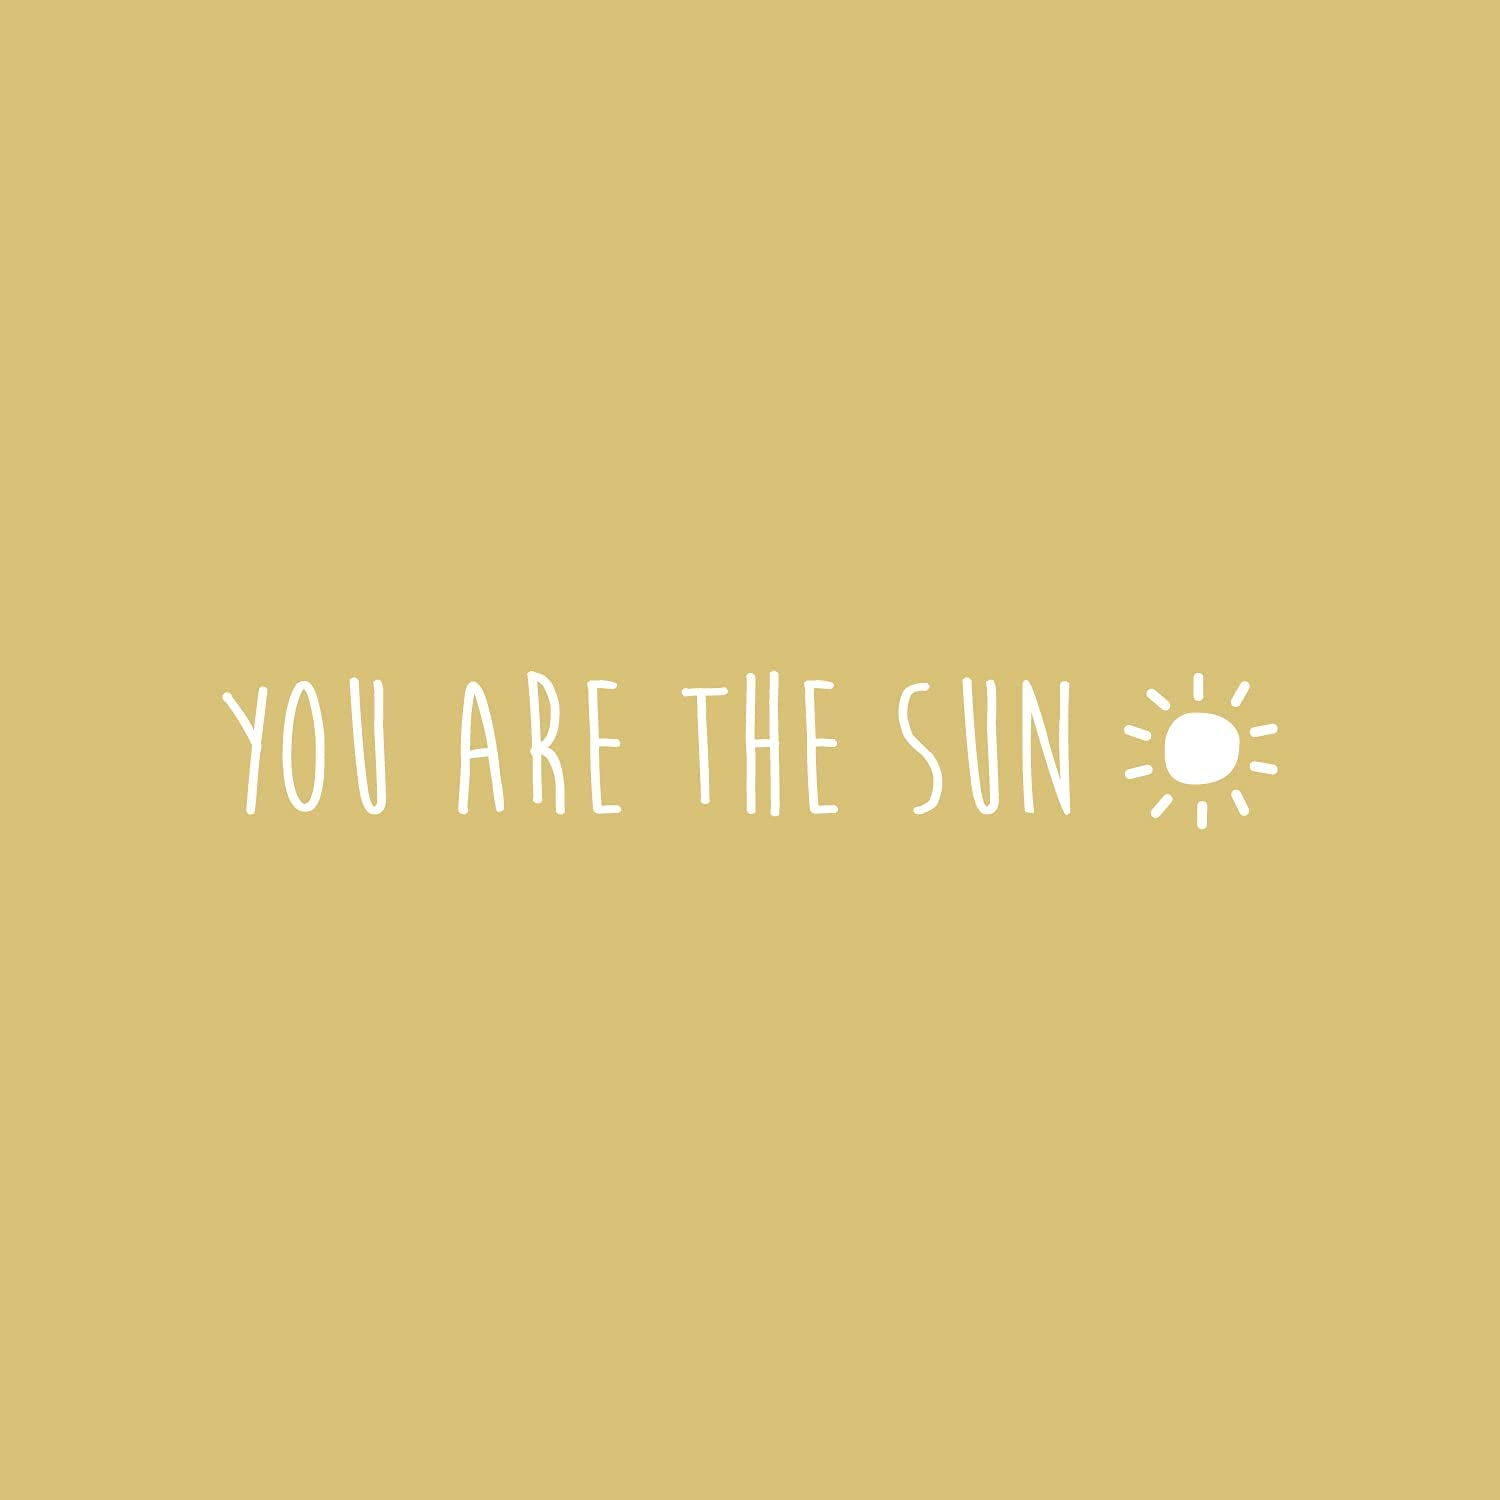 Vinyl Wall Art Decal You are The Sun Trendy Cute Inspiring Positive Lovely Quote Sticker for Bedroom Living Room Kids Room Playroom Nursery Baby Room Daycare Decor 3 x 20 Black